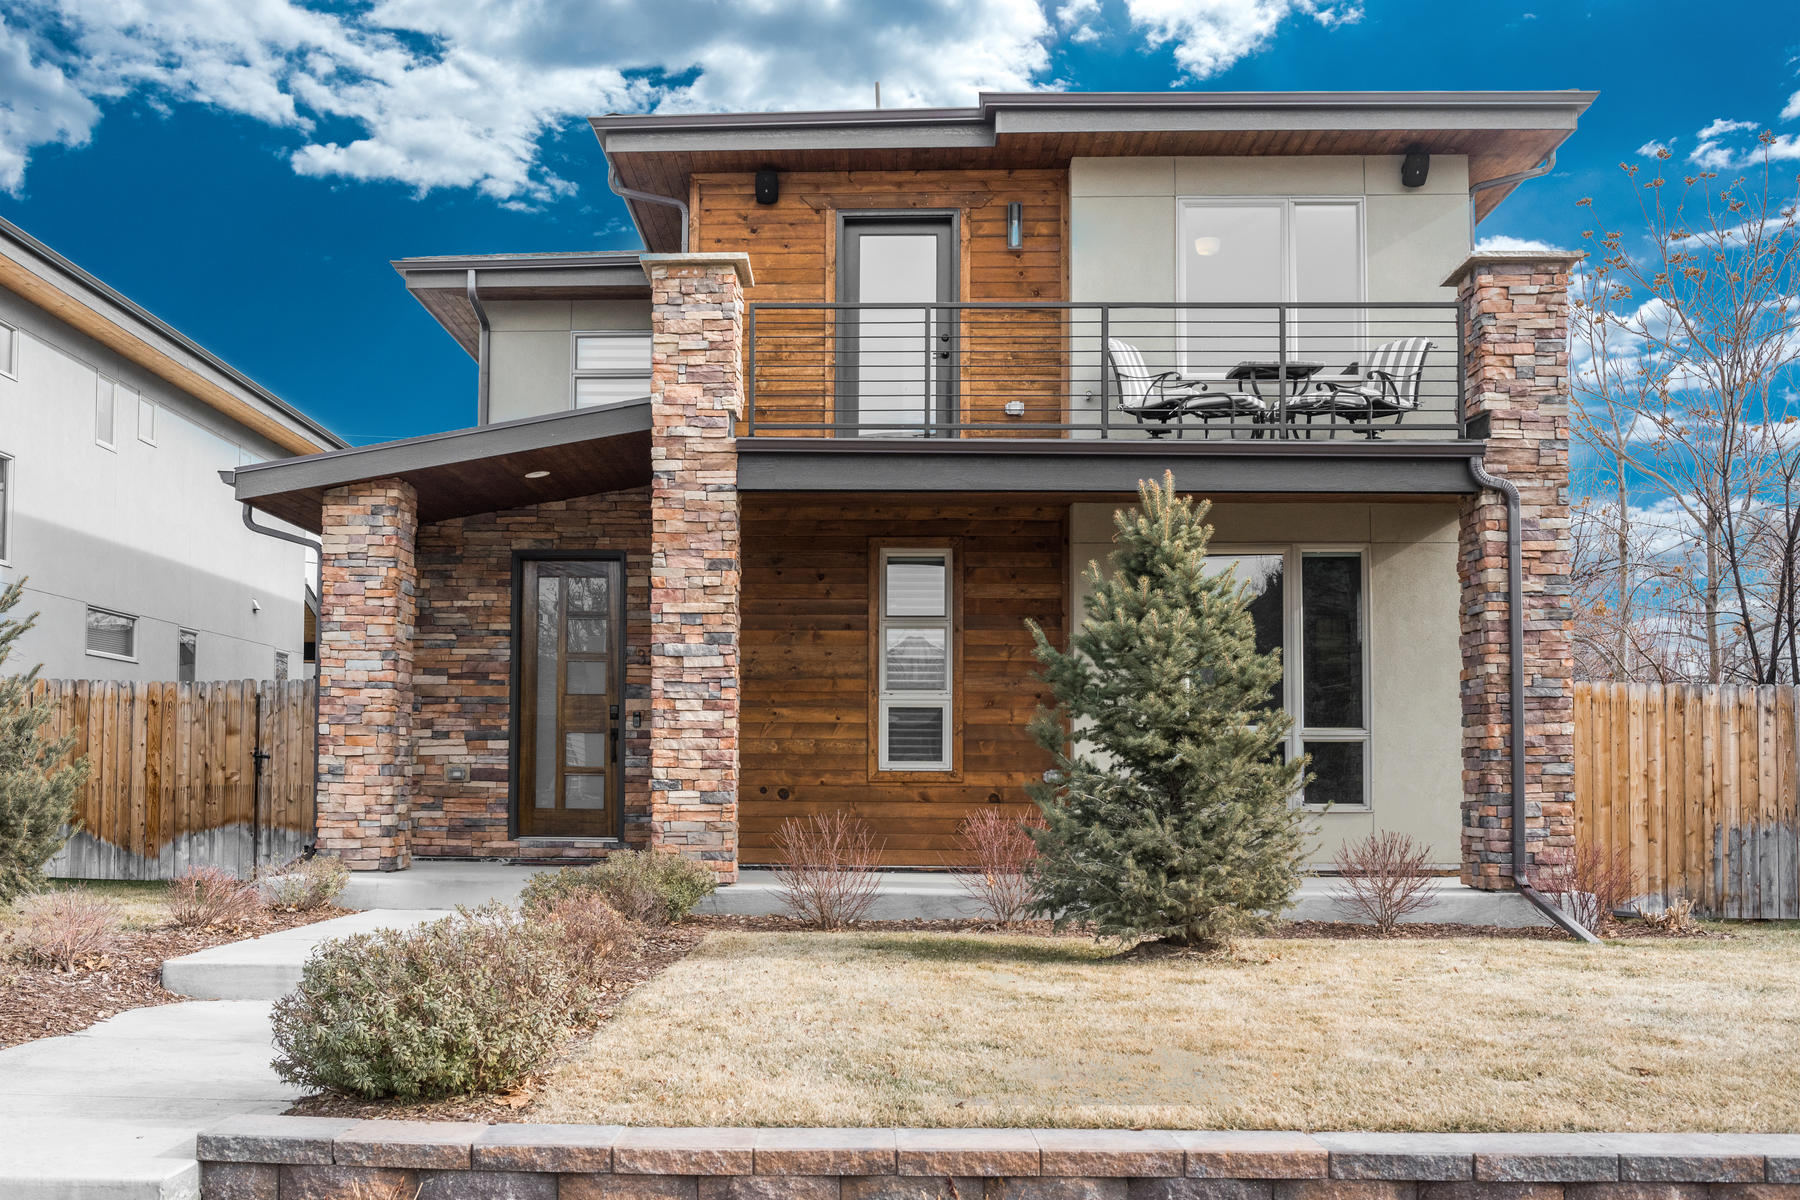 Single Family Homes for Sale at Mountain Meets Modern in this Fabulous MAG Builders Custom Home! 3226 S Ogden Street Englewood, Colorado 80113 United States